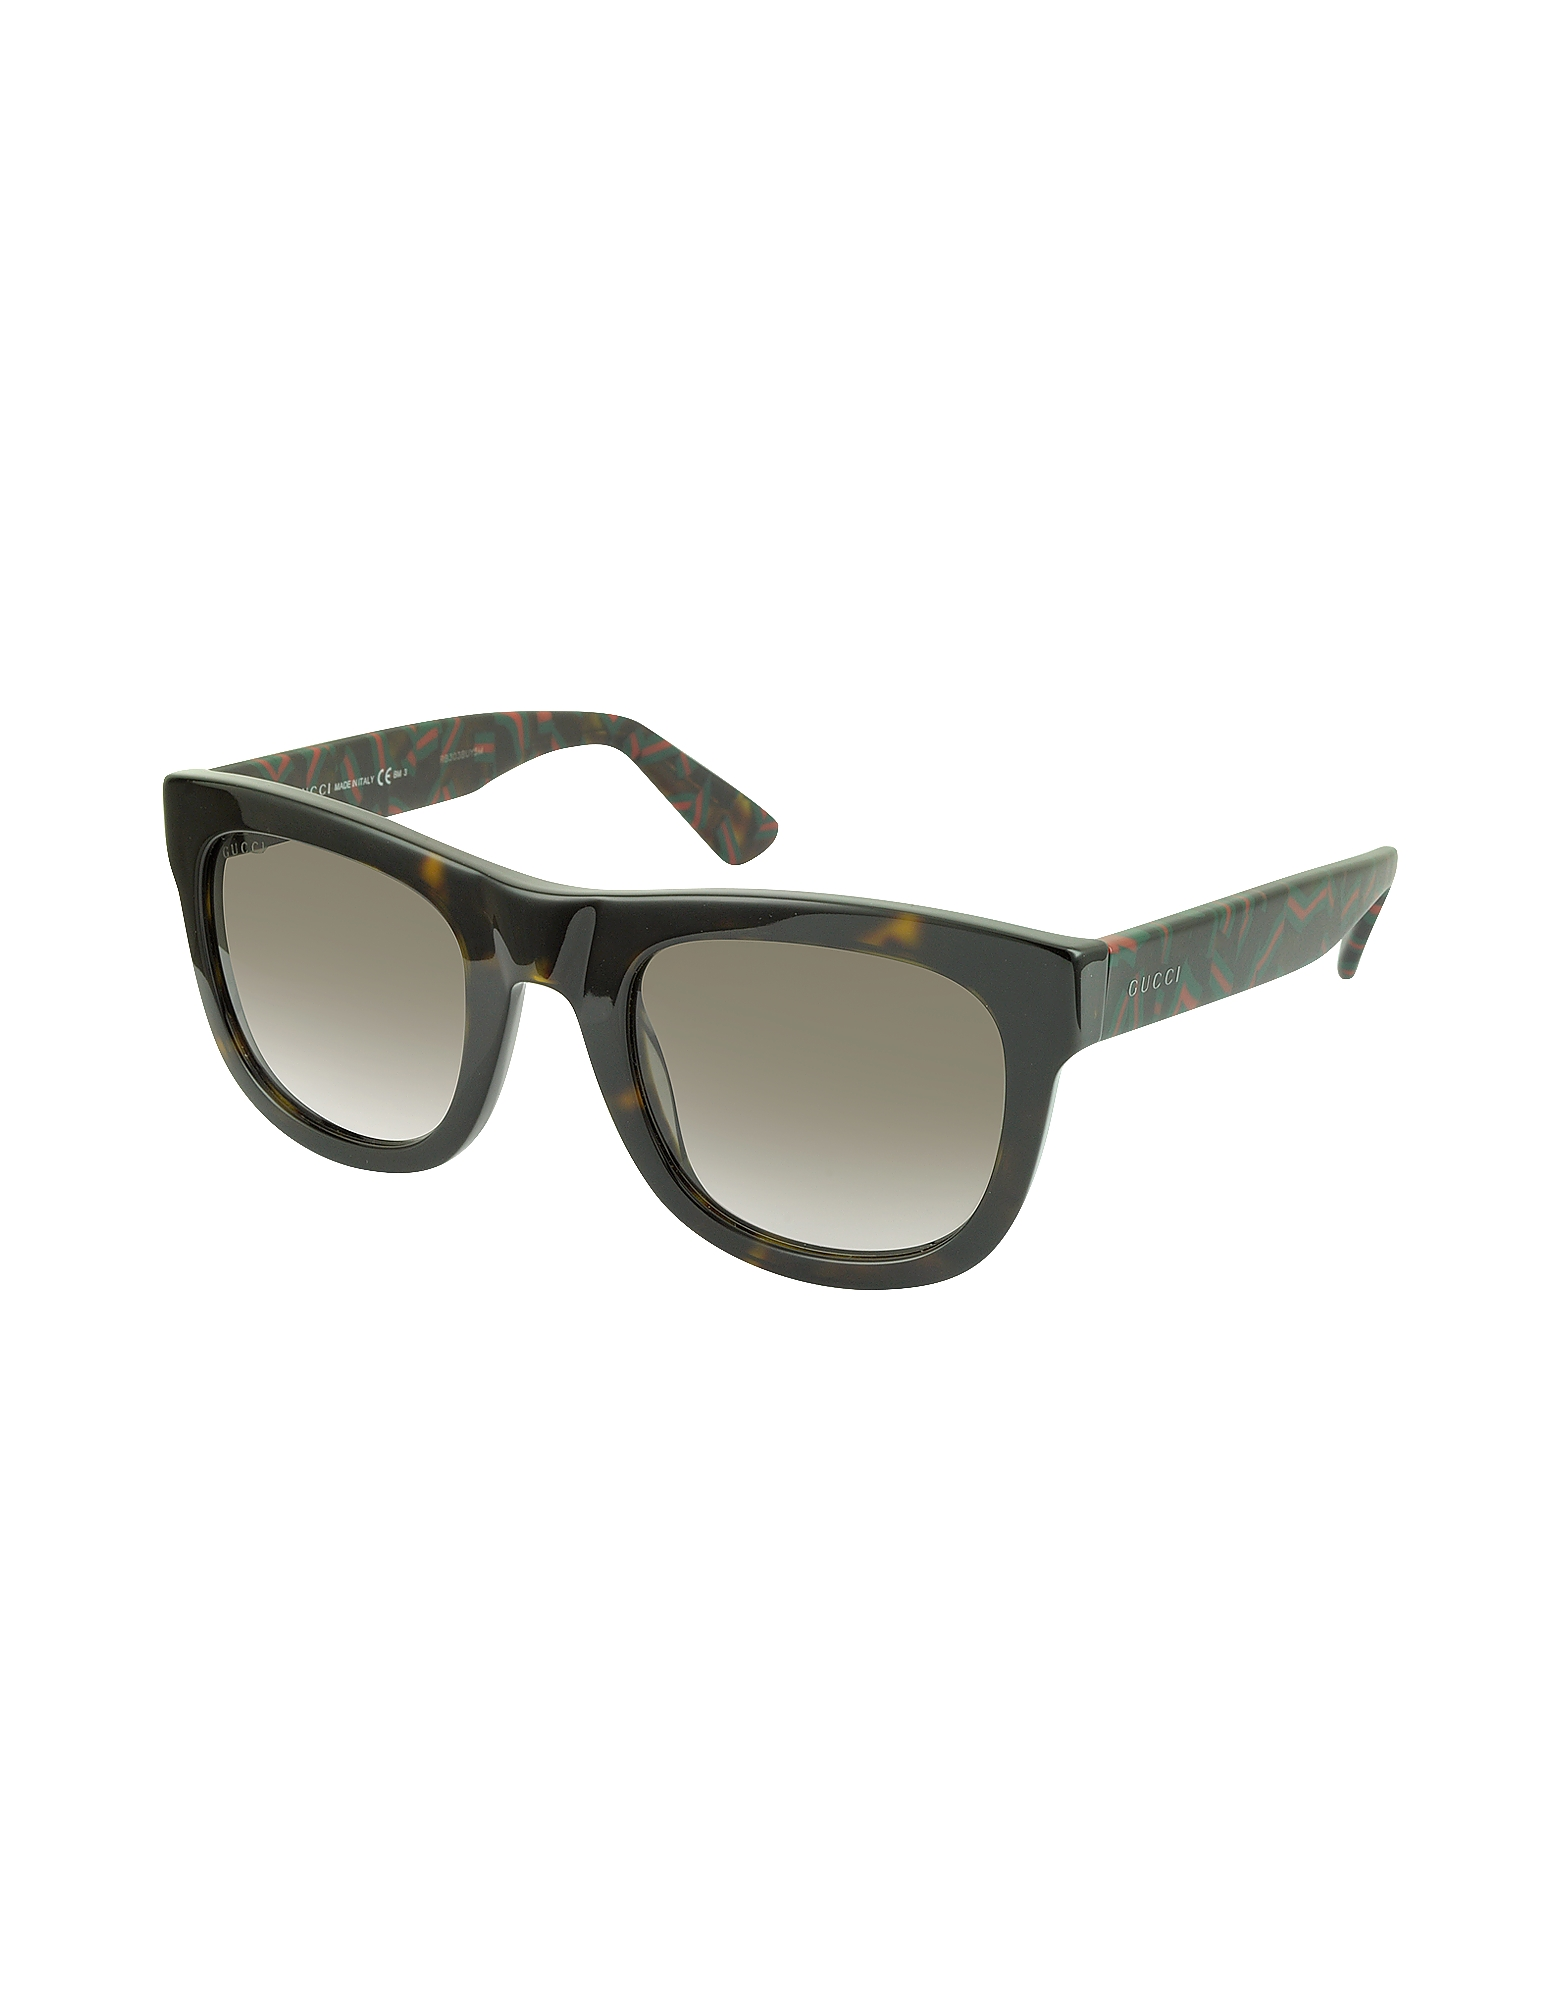 GG 1100/S H30HA Dark Havana Acetate Rectangle Sunglasses w/Red & Green Web Detail от Forzieri.com INT